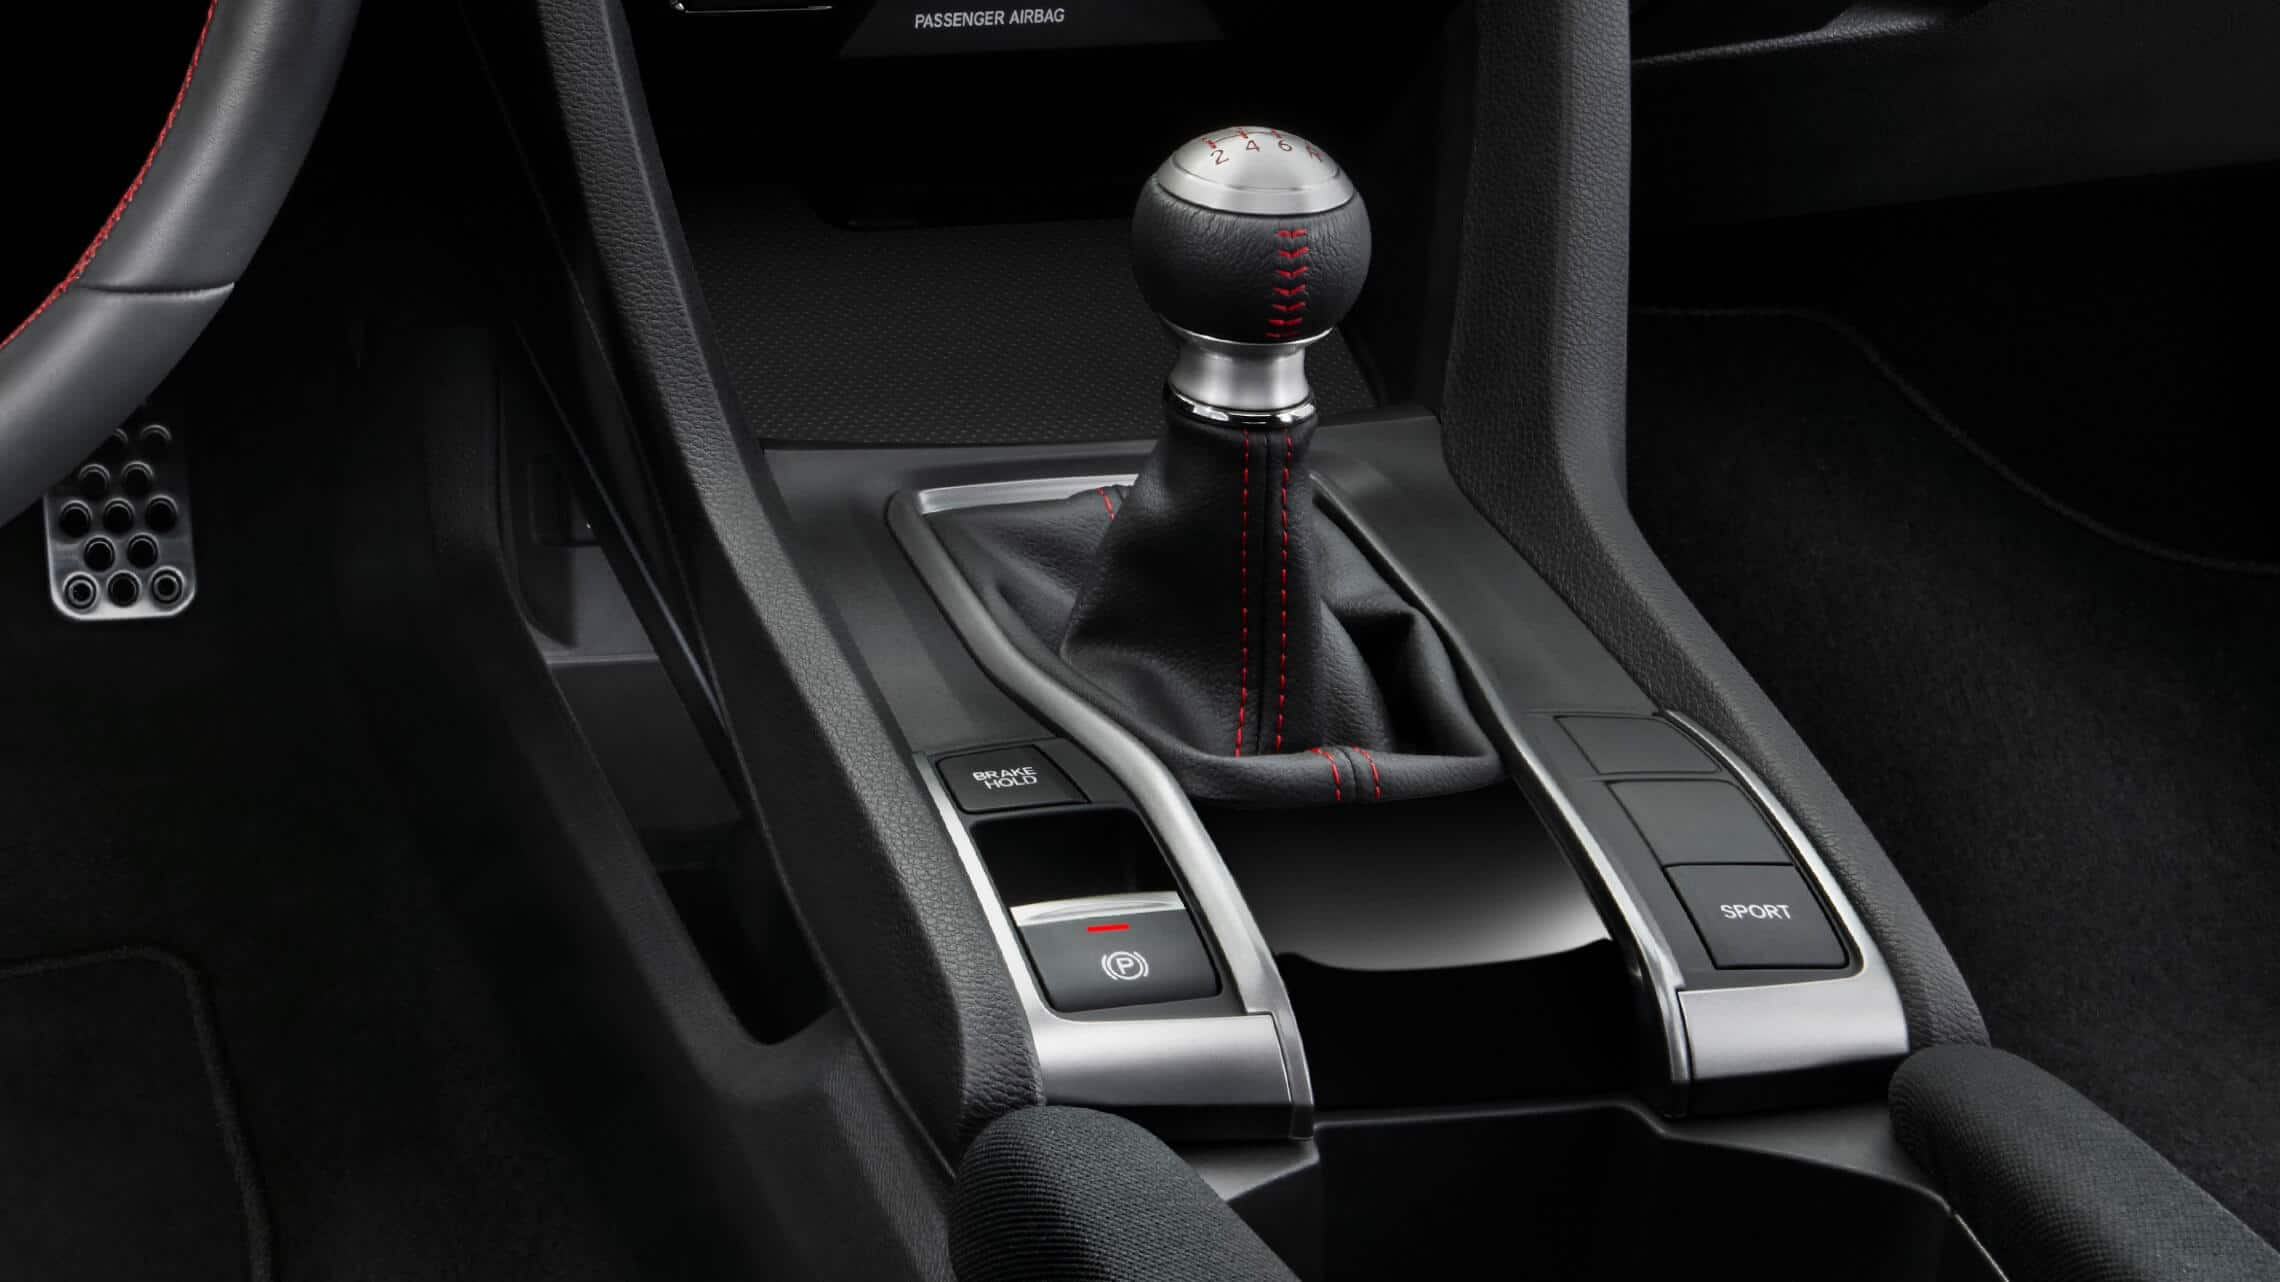 6-speed manual shifter detail with driving-mode controls in 2020 Honda Civic Si Coupe.